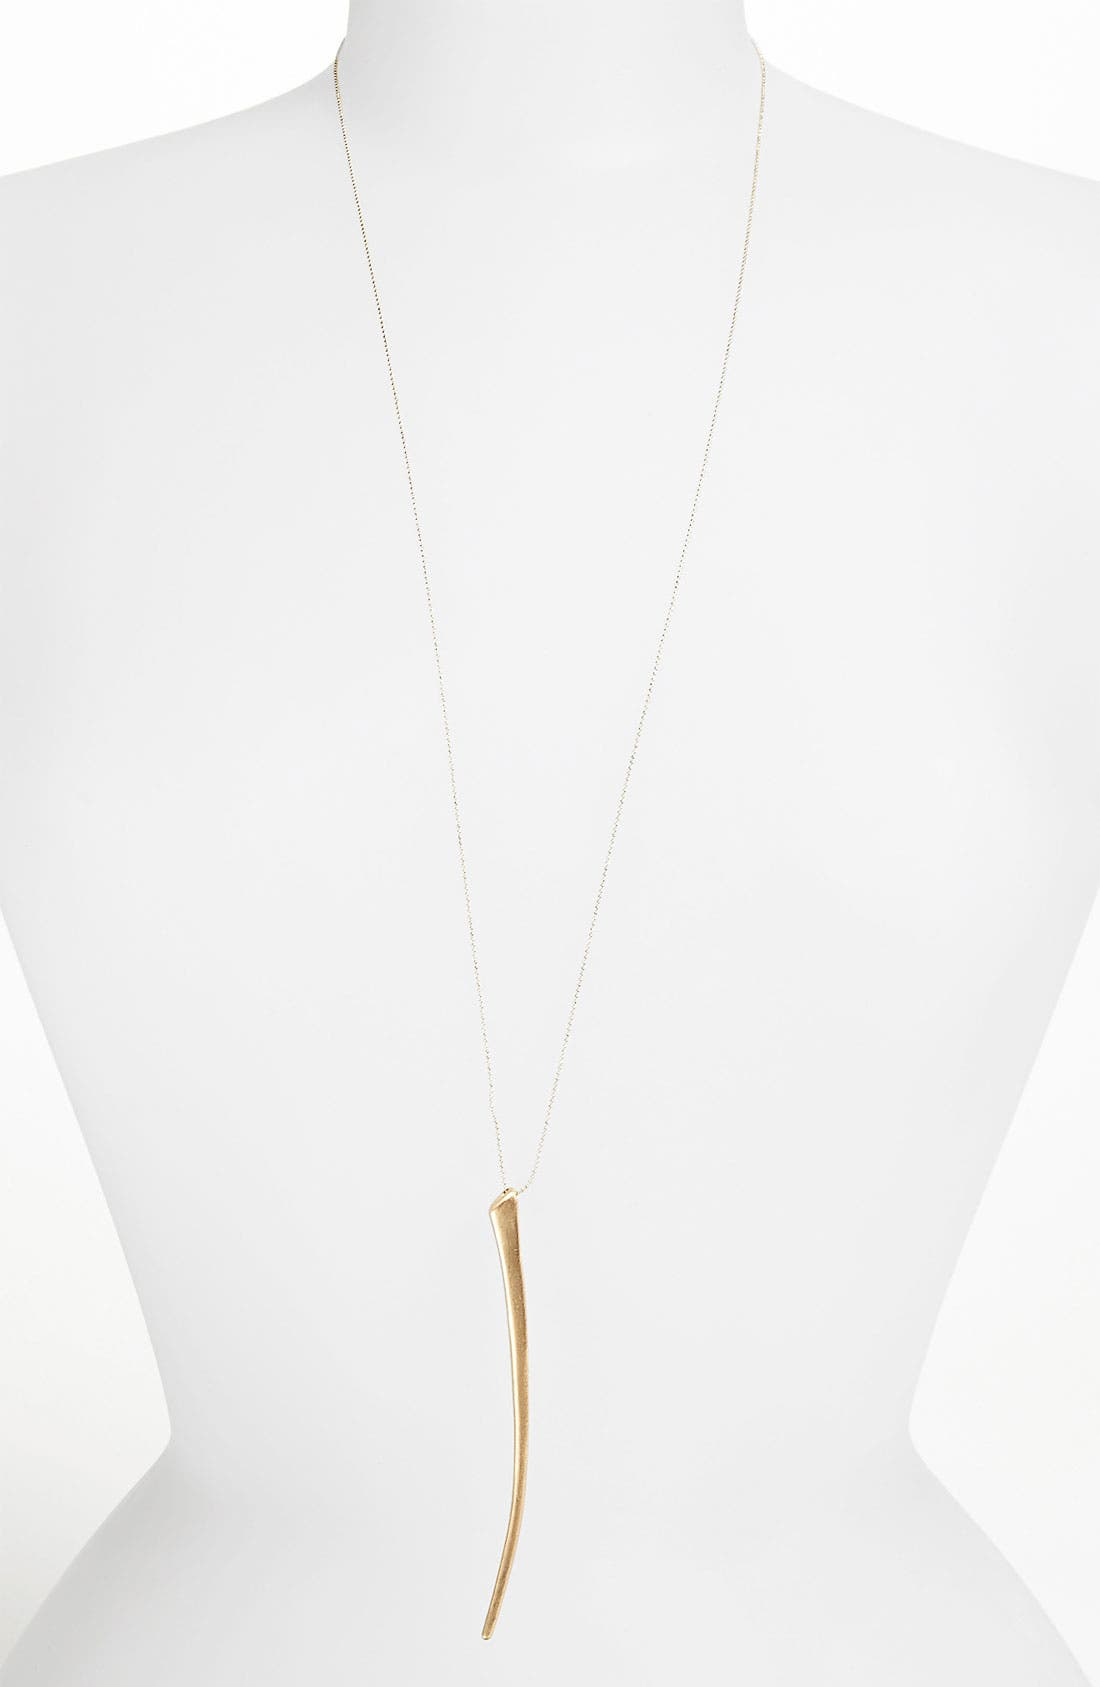 Alternate Image 1 Selected - Topshop 'Thin Tusk' Pendant Necklace